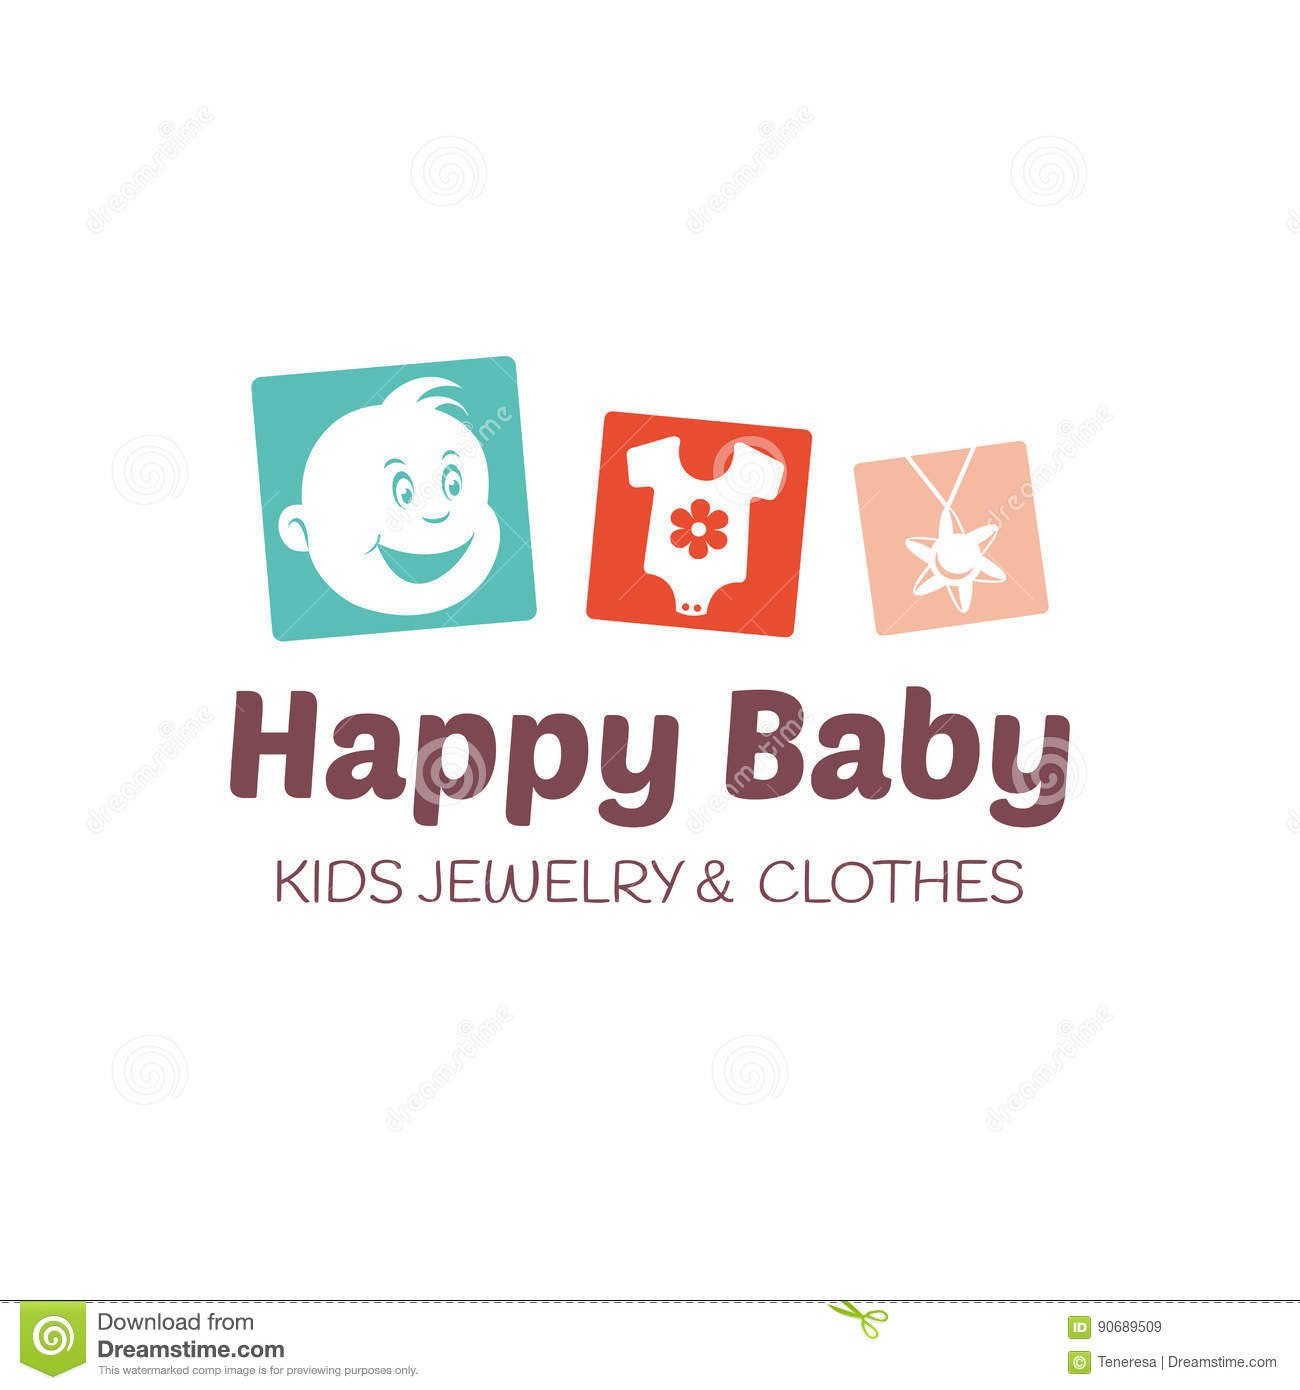 Free Editable Logo Templates Baby Shop Logo Vector Template Stock Vector Illustration